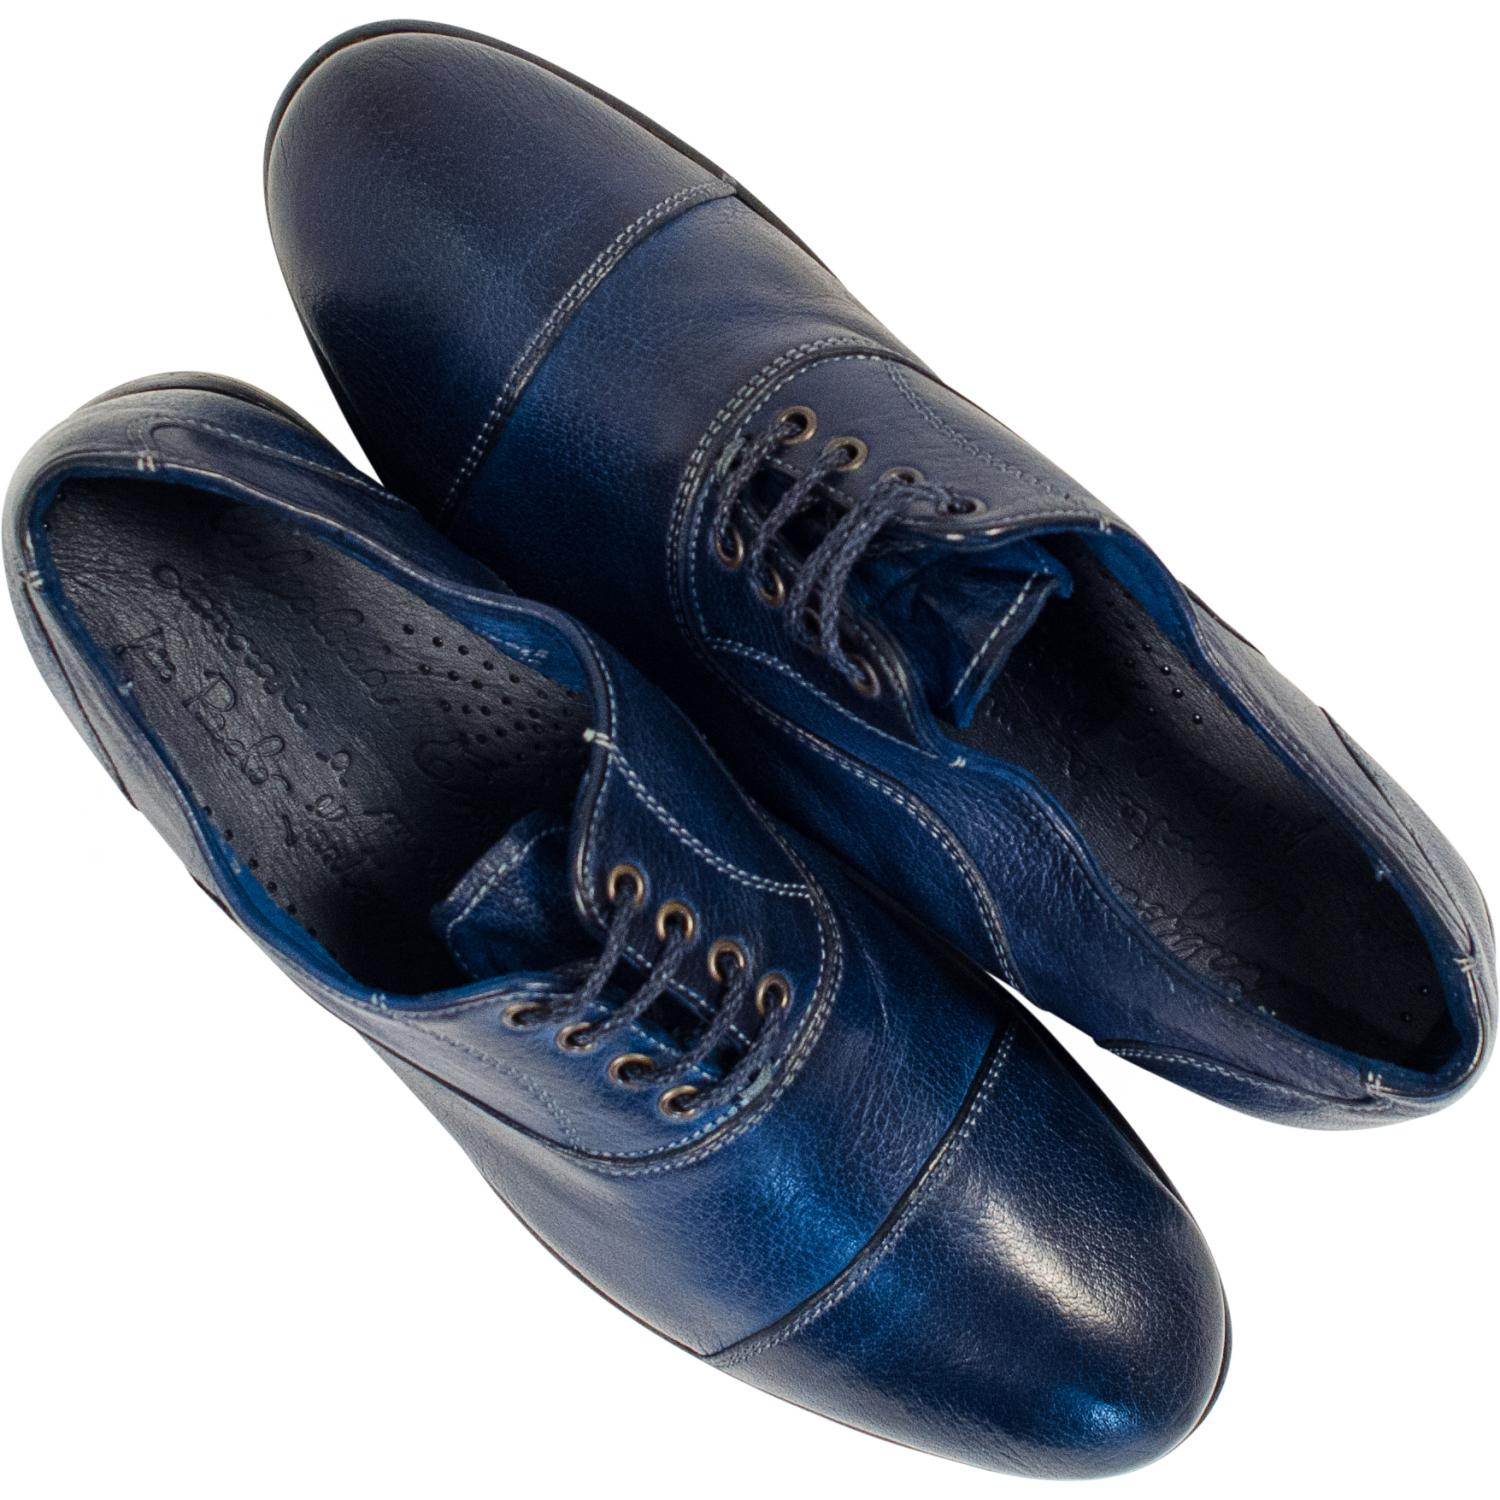 Melissa Dip Dyed Blue Leather Oxford Lace Up Shoes Paolo